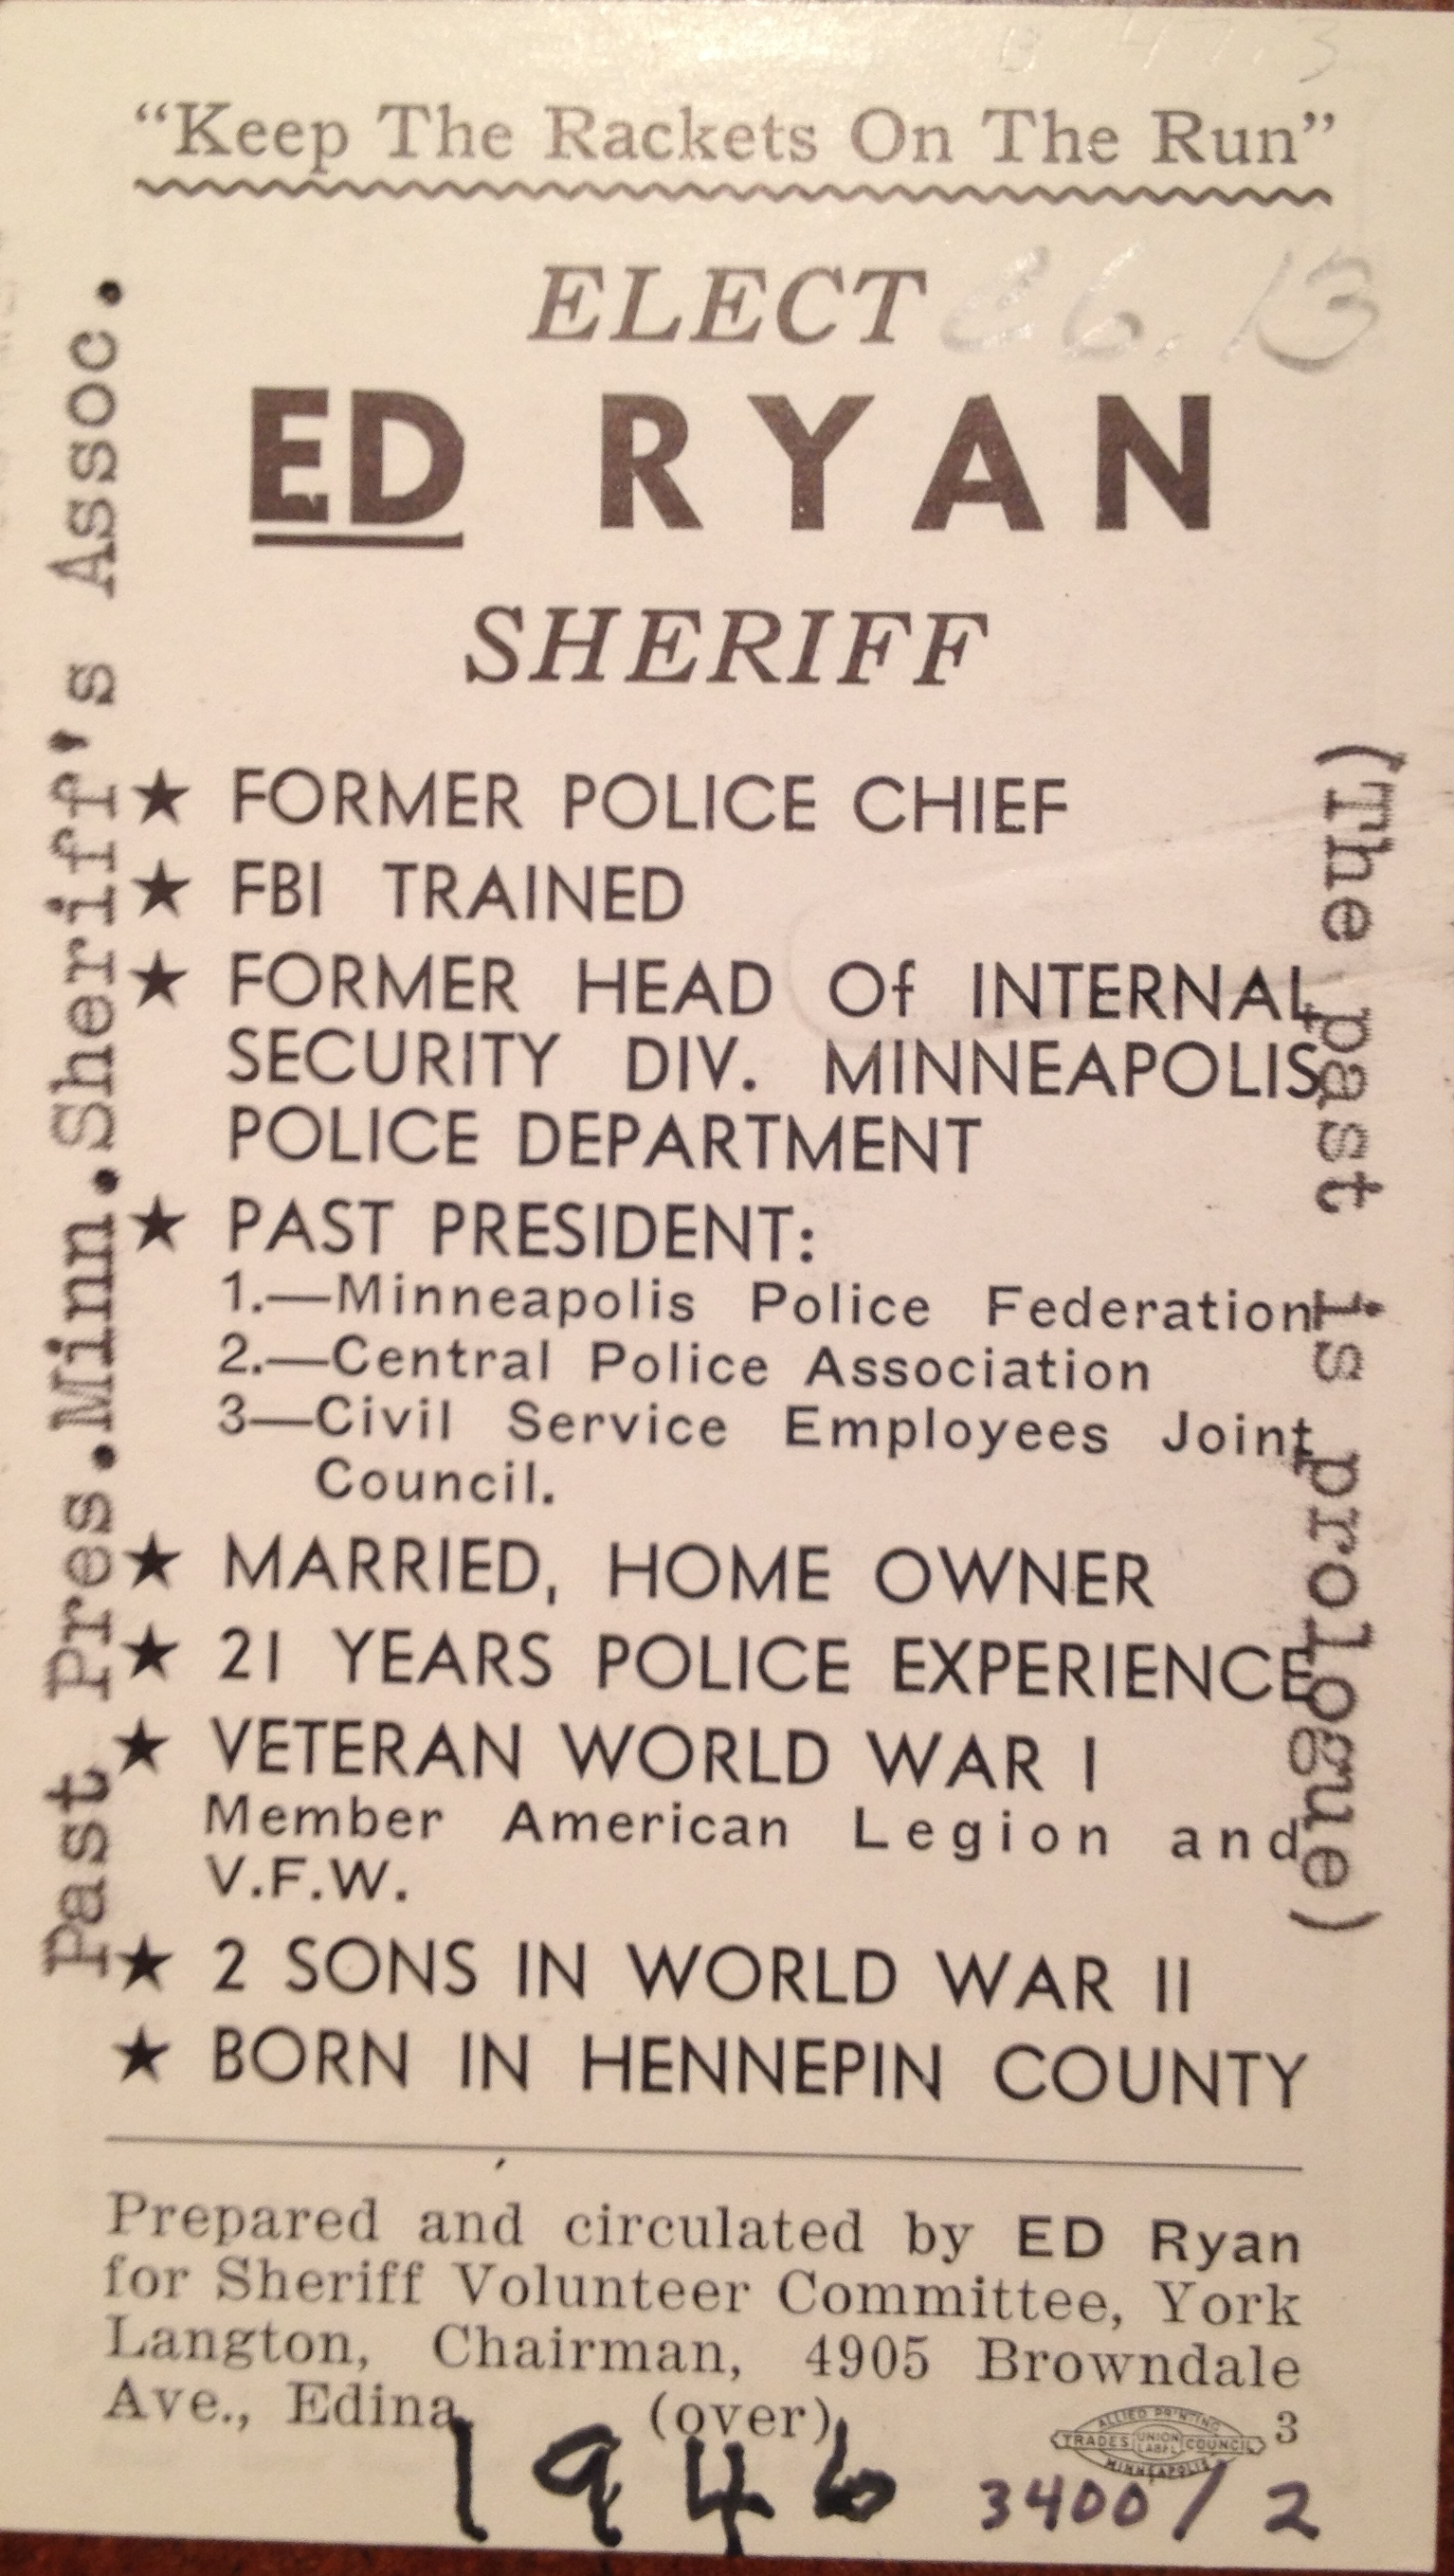 ed ryan for sherriff campaign card